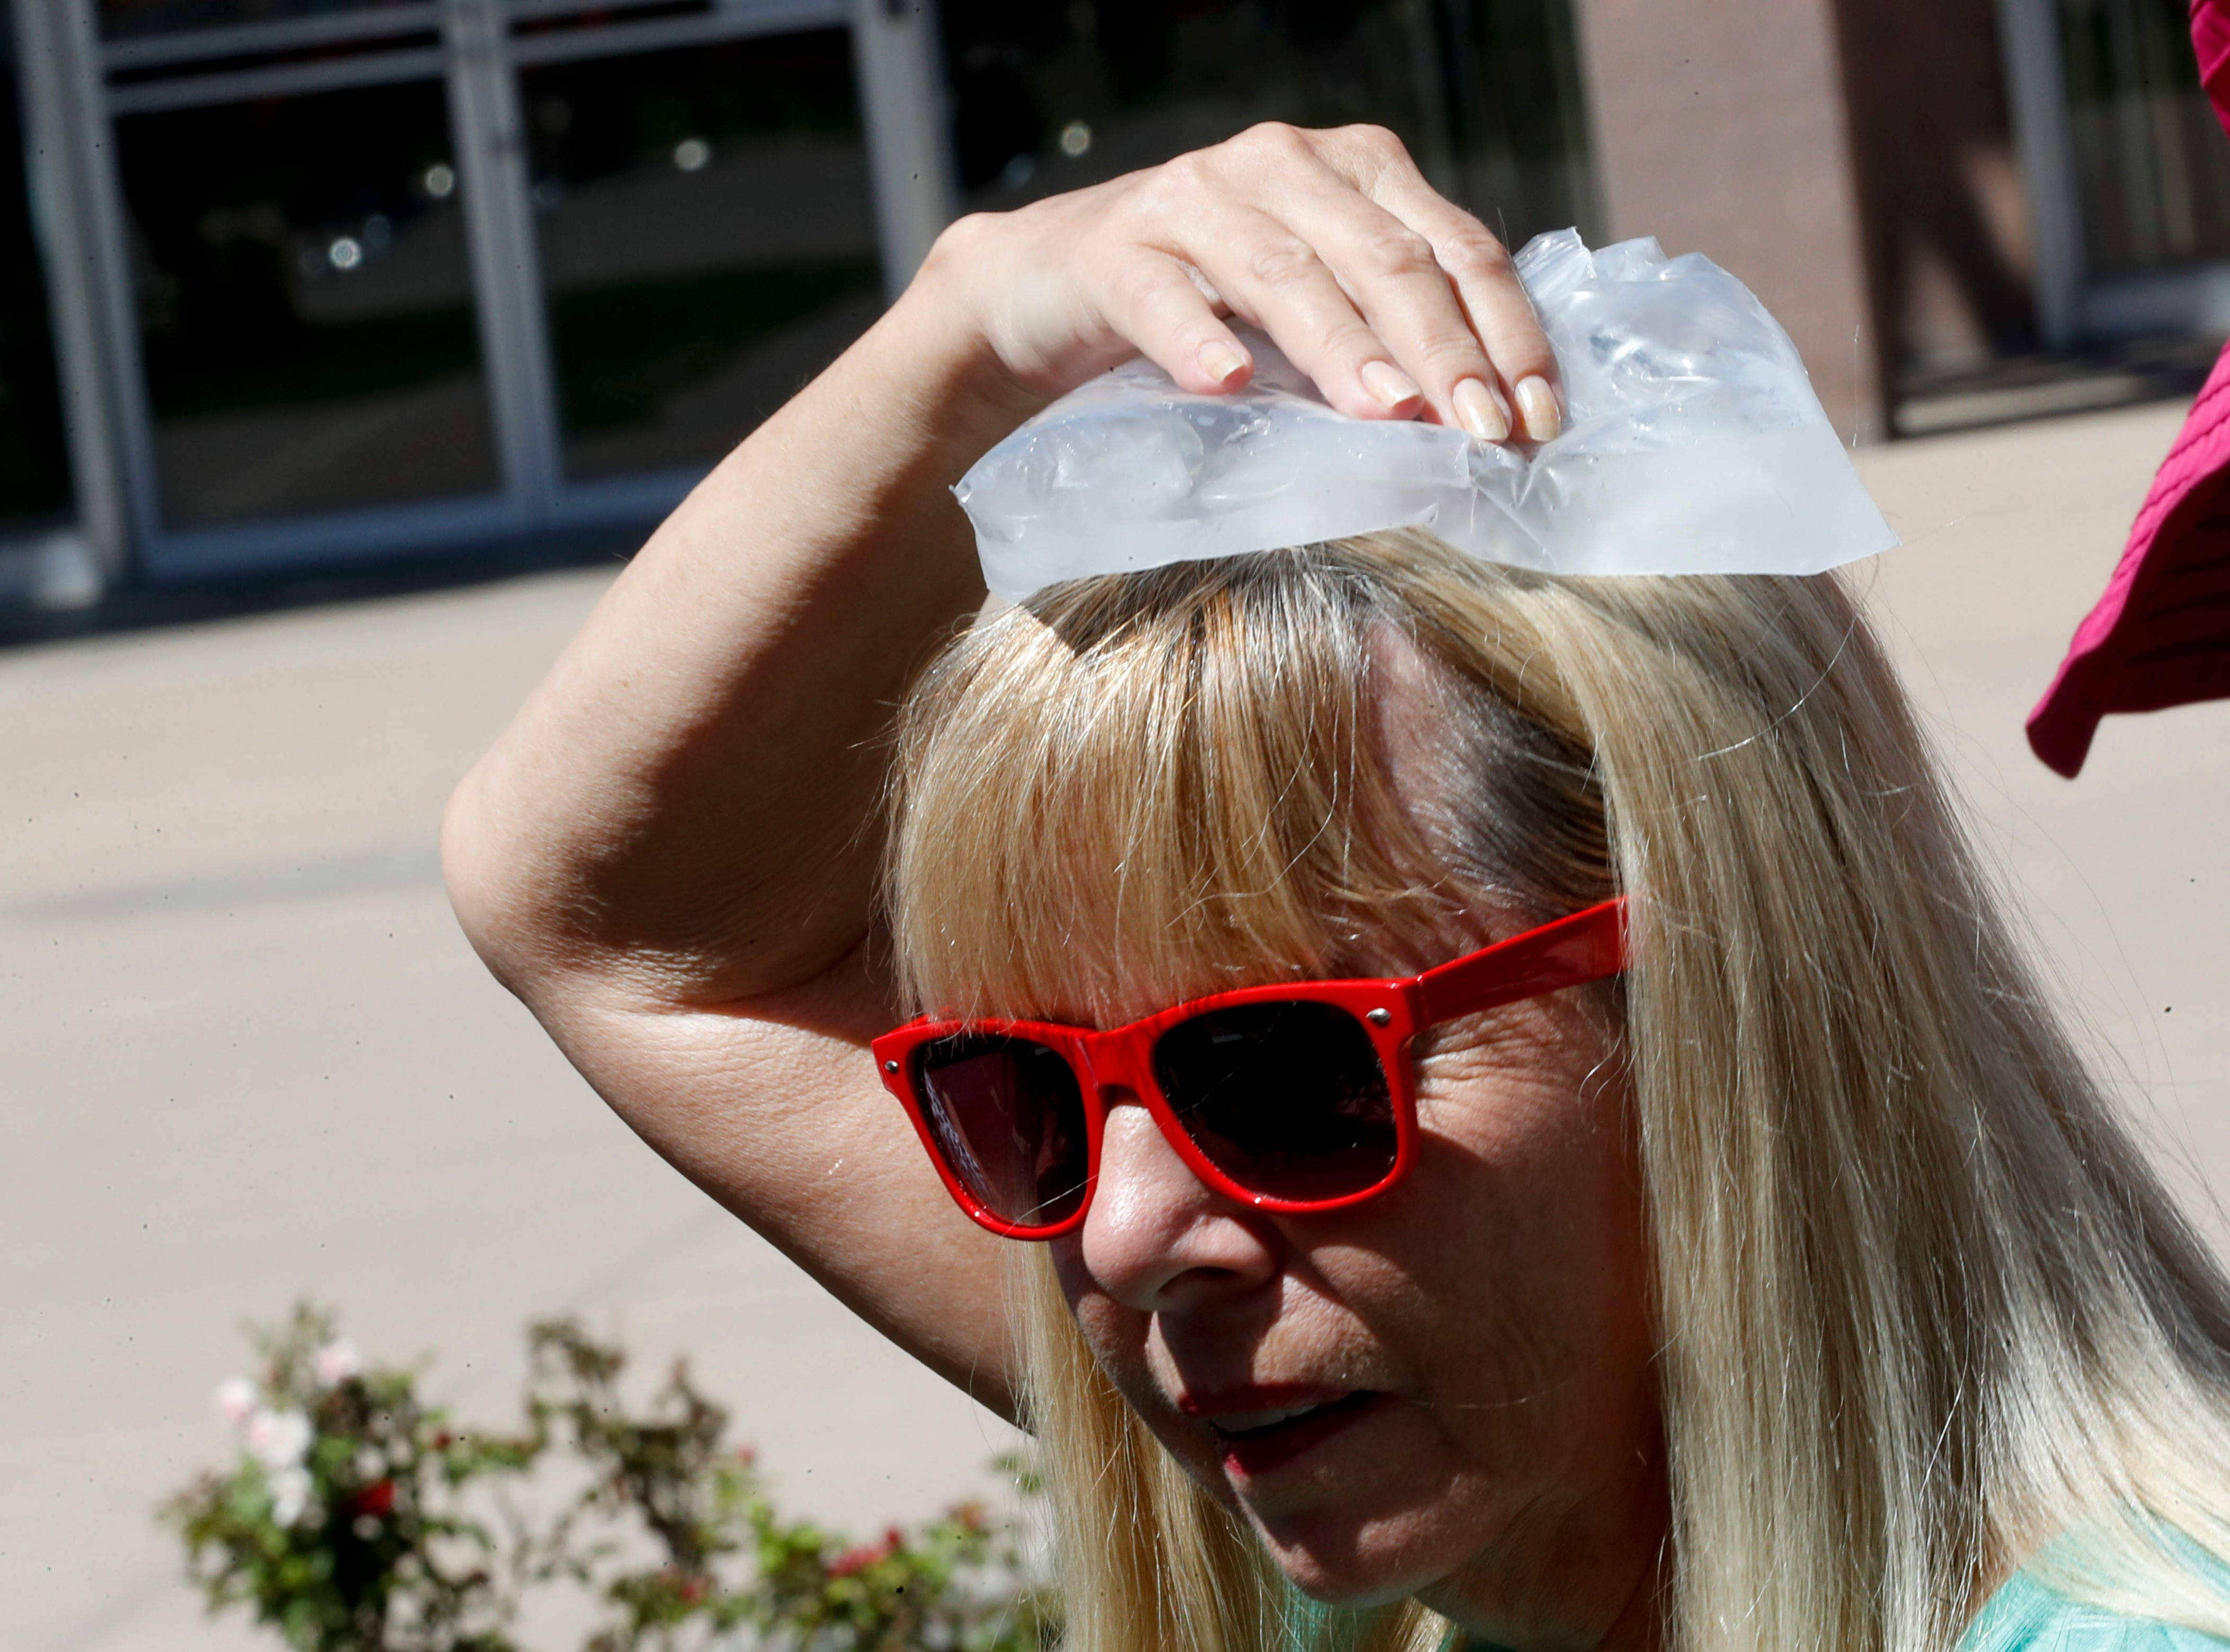 A woman cools off with an ice pack waiting in line to play respects to Sen. John McCain during a viewing at the Arizona Capitol on Aug. 29, 2018, in Phoenix.